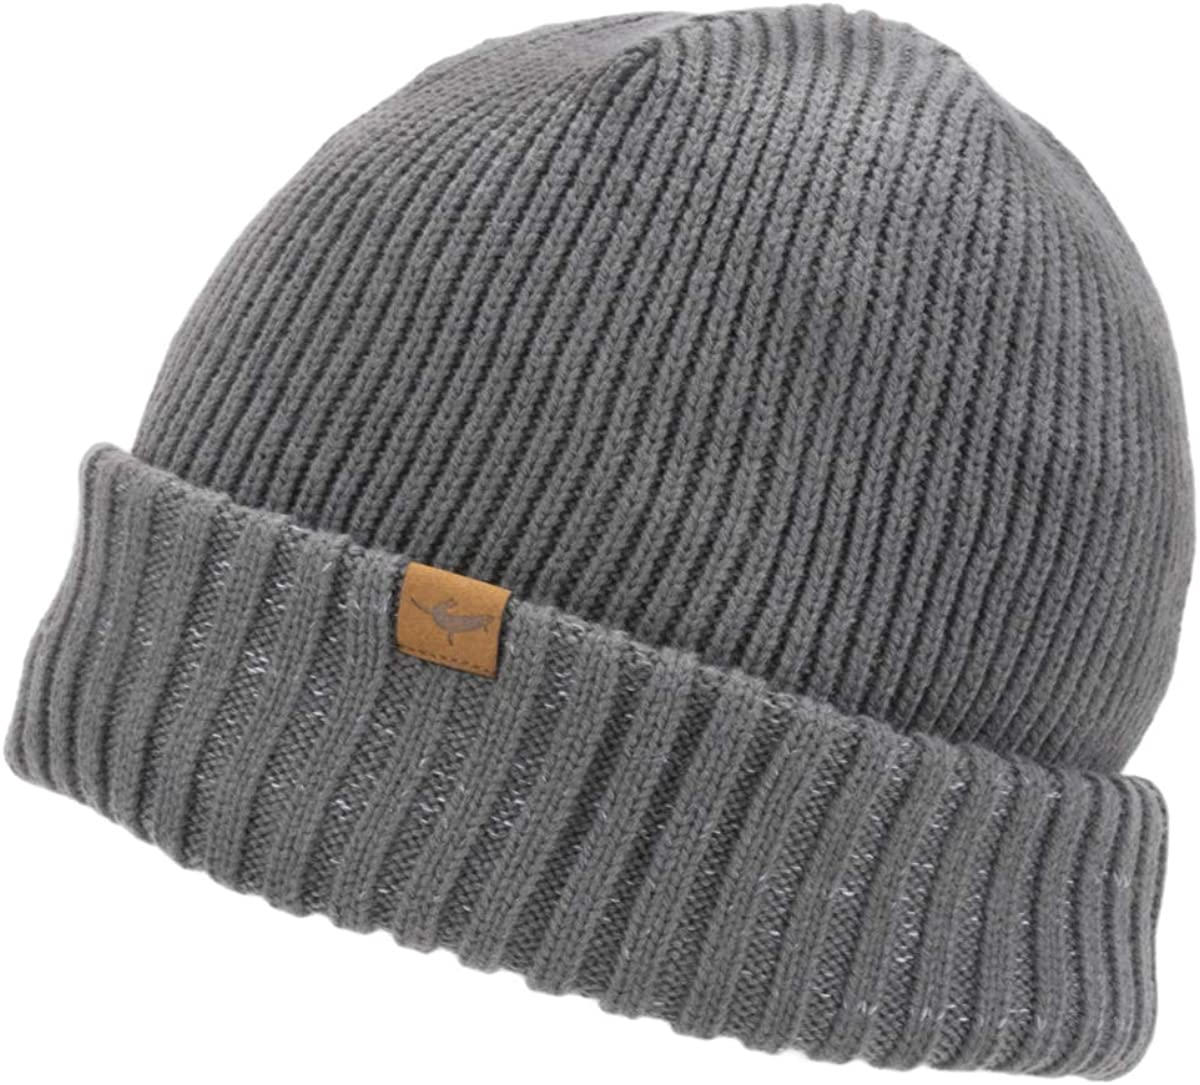 wholesale SEALSKINZ Waterproof Cold Weather Beanie Cuff Roll Max 54% OFF